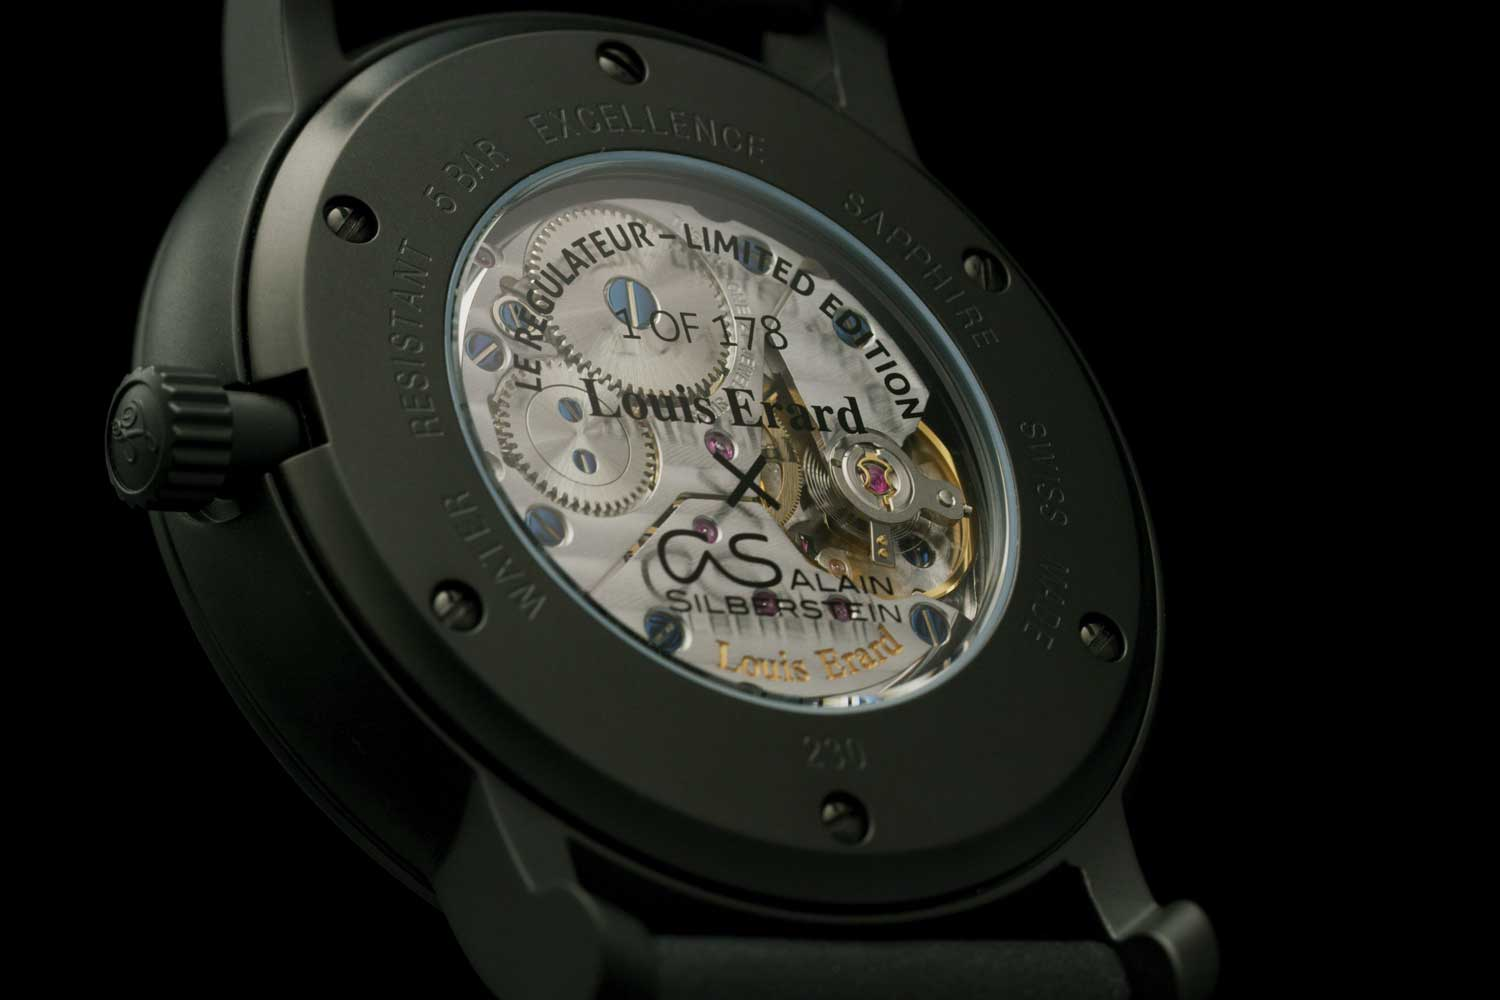 Caseback of the Louis Erard x Alain Silberstein Excellence Regulator - Black PVD-Coated stainless-steel